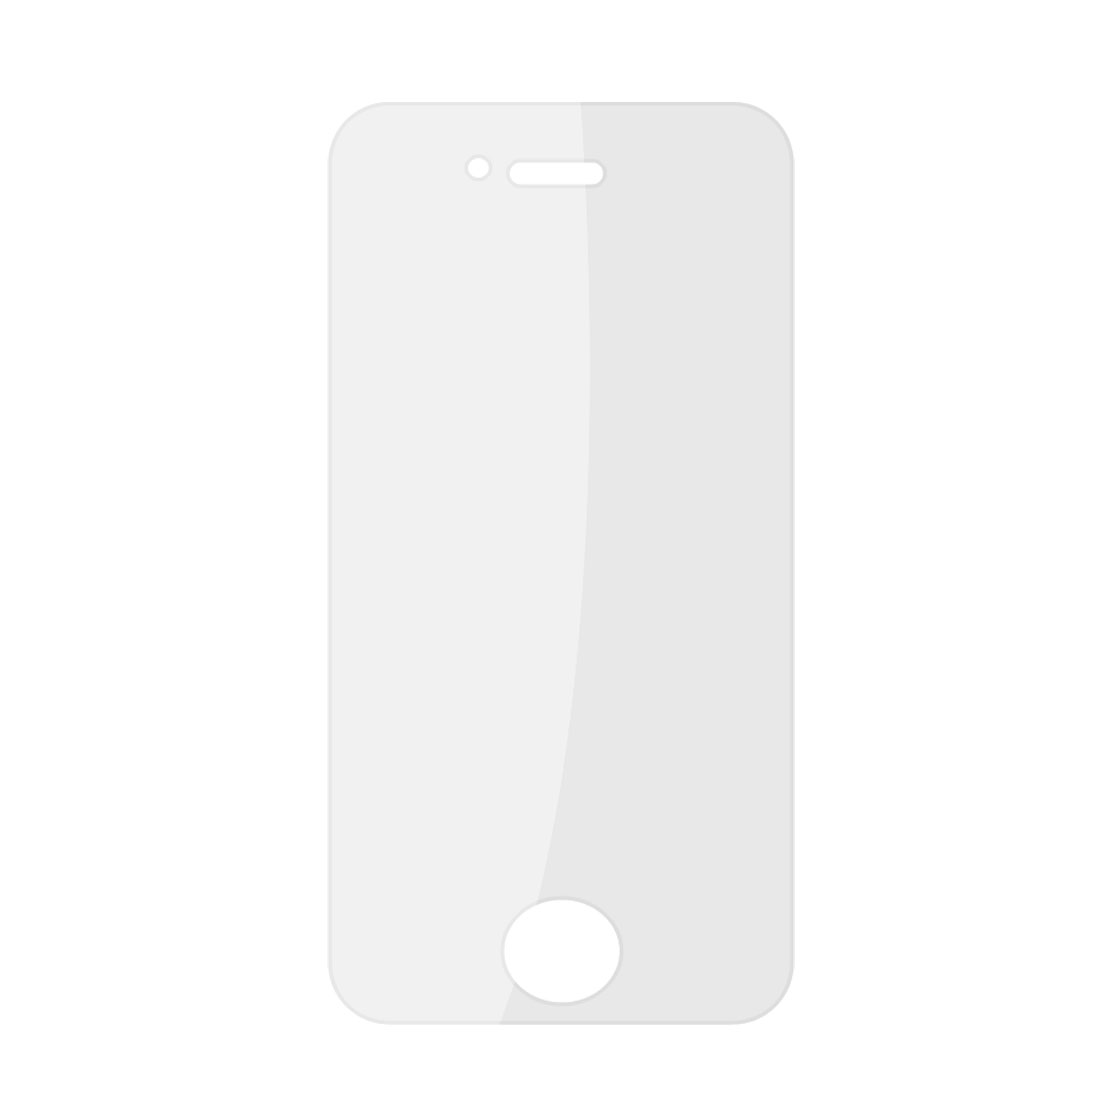 Anti-scratch Protective Clear Plastic LCD Screen Guard for iPhone 4 4G